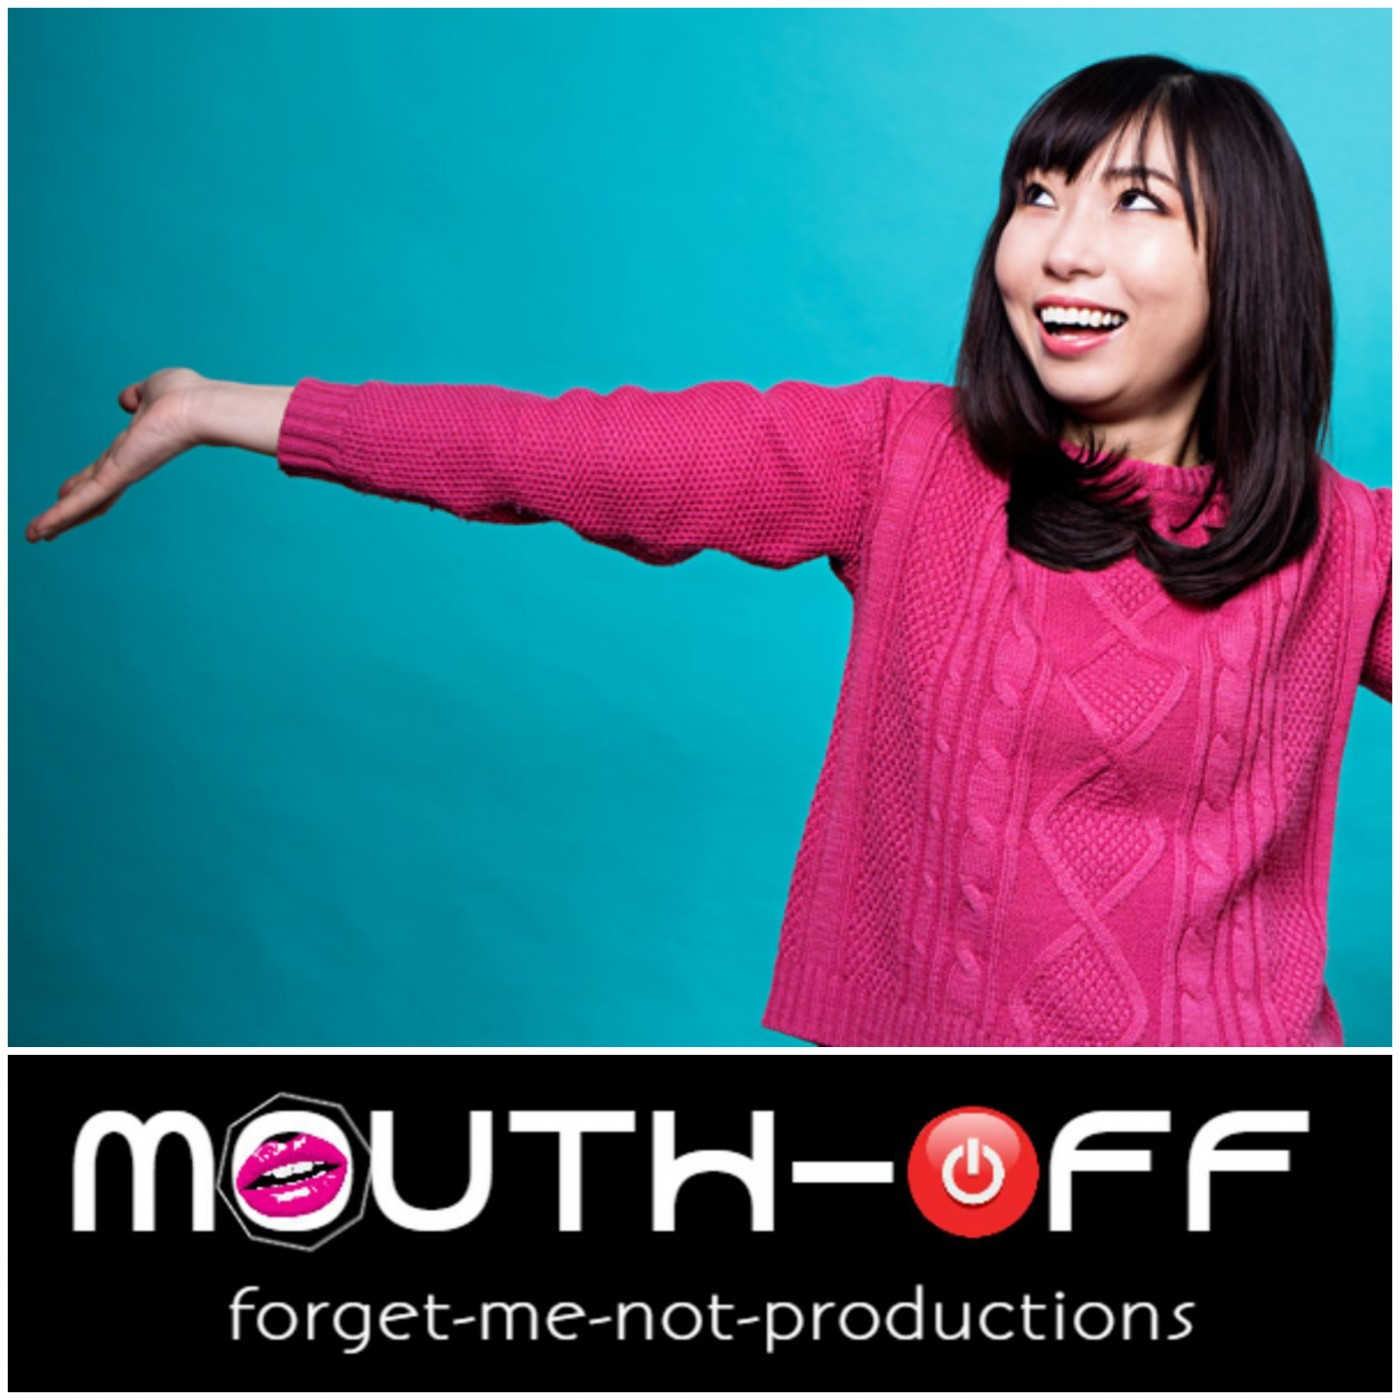 Mouth-Off Episode 3: Comedy, sexism, racism and other isms